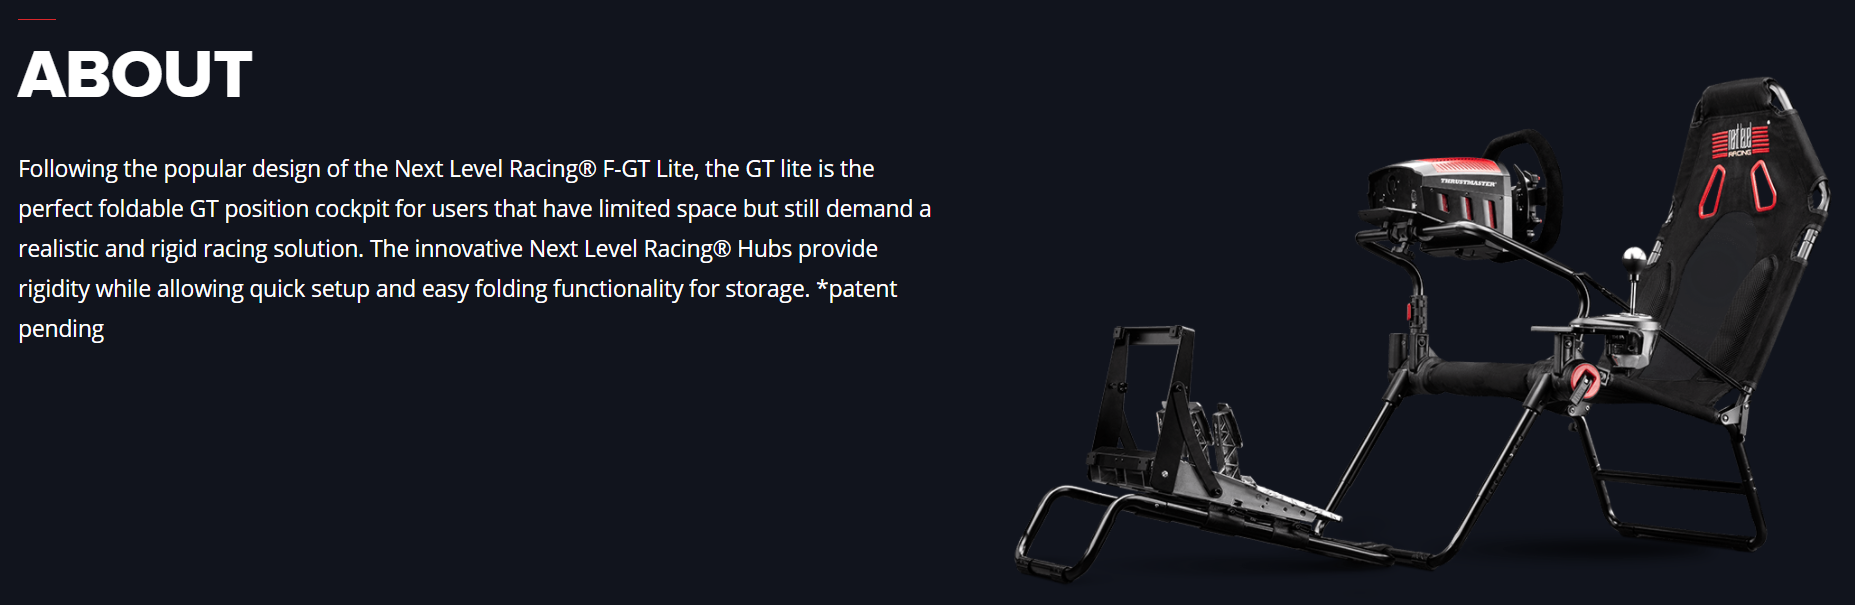 Following the popular design of the Next Level Racing® F-GT Lite, the GT lite is the perfect foldable GT position cockpit for users that have limited space but still demand a realistic and rigid racing solution. The innovative Next Level Racing® Hubs provide rigidity while allowing quick setup and easy folding functionality for storage. *patent pending